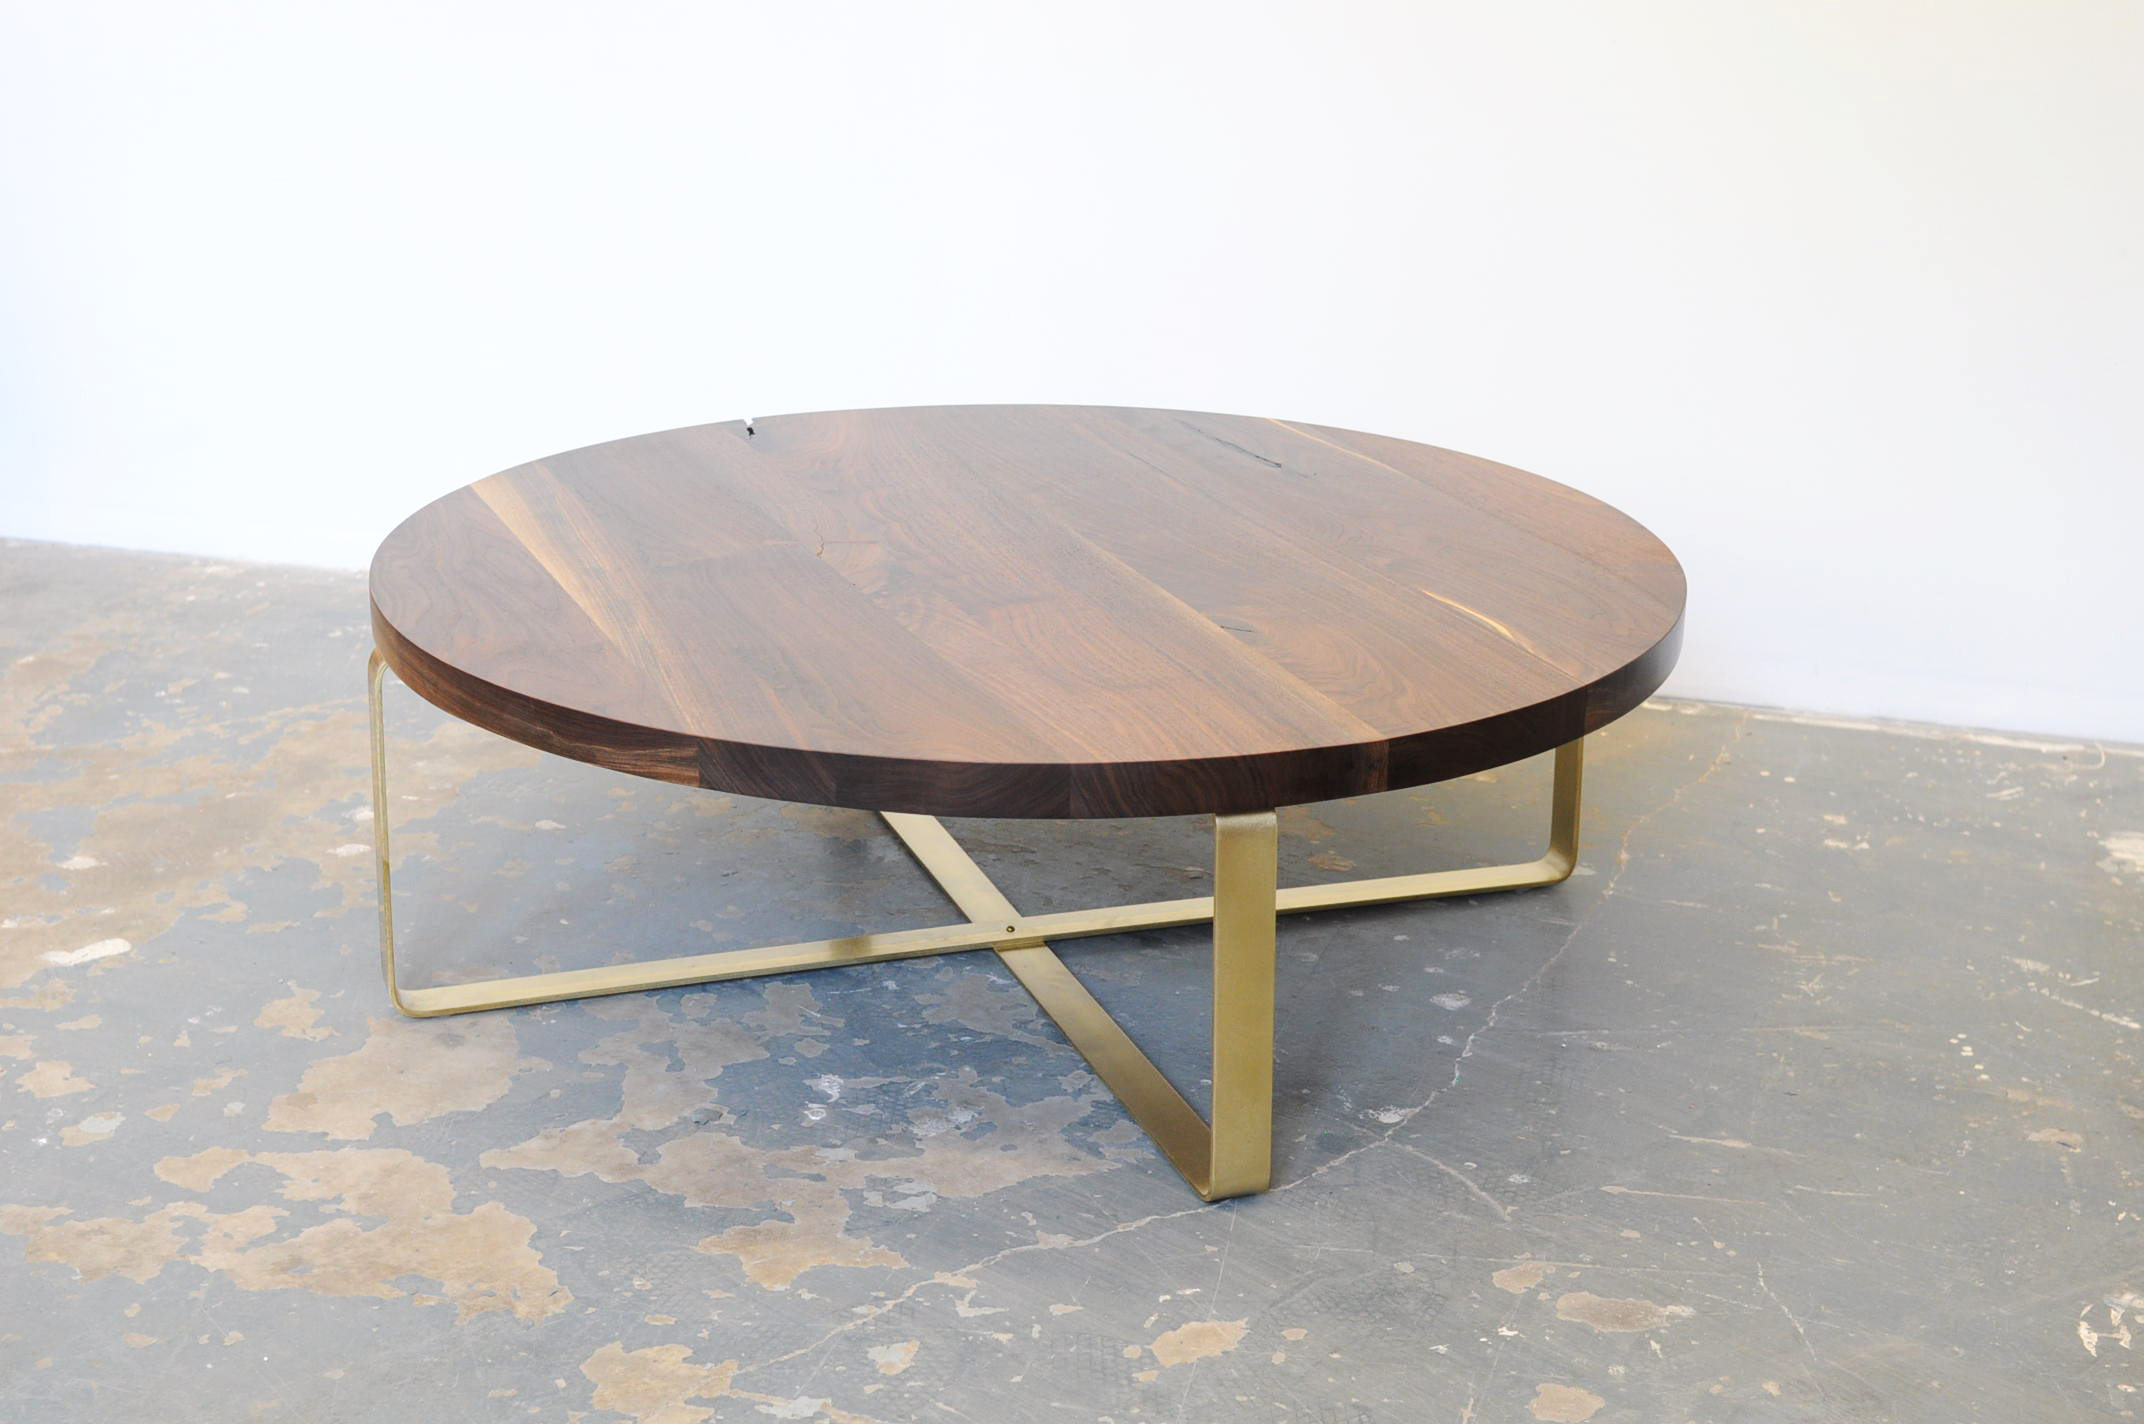 round-brass-coffee-table-in-living-rooms-interior-design-and-decorating-ideas-unique-brass-coffee-table (Image 9 of 10)